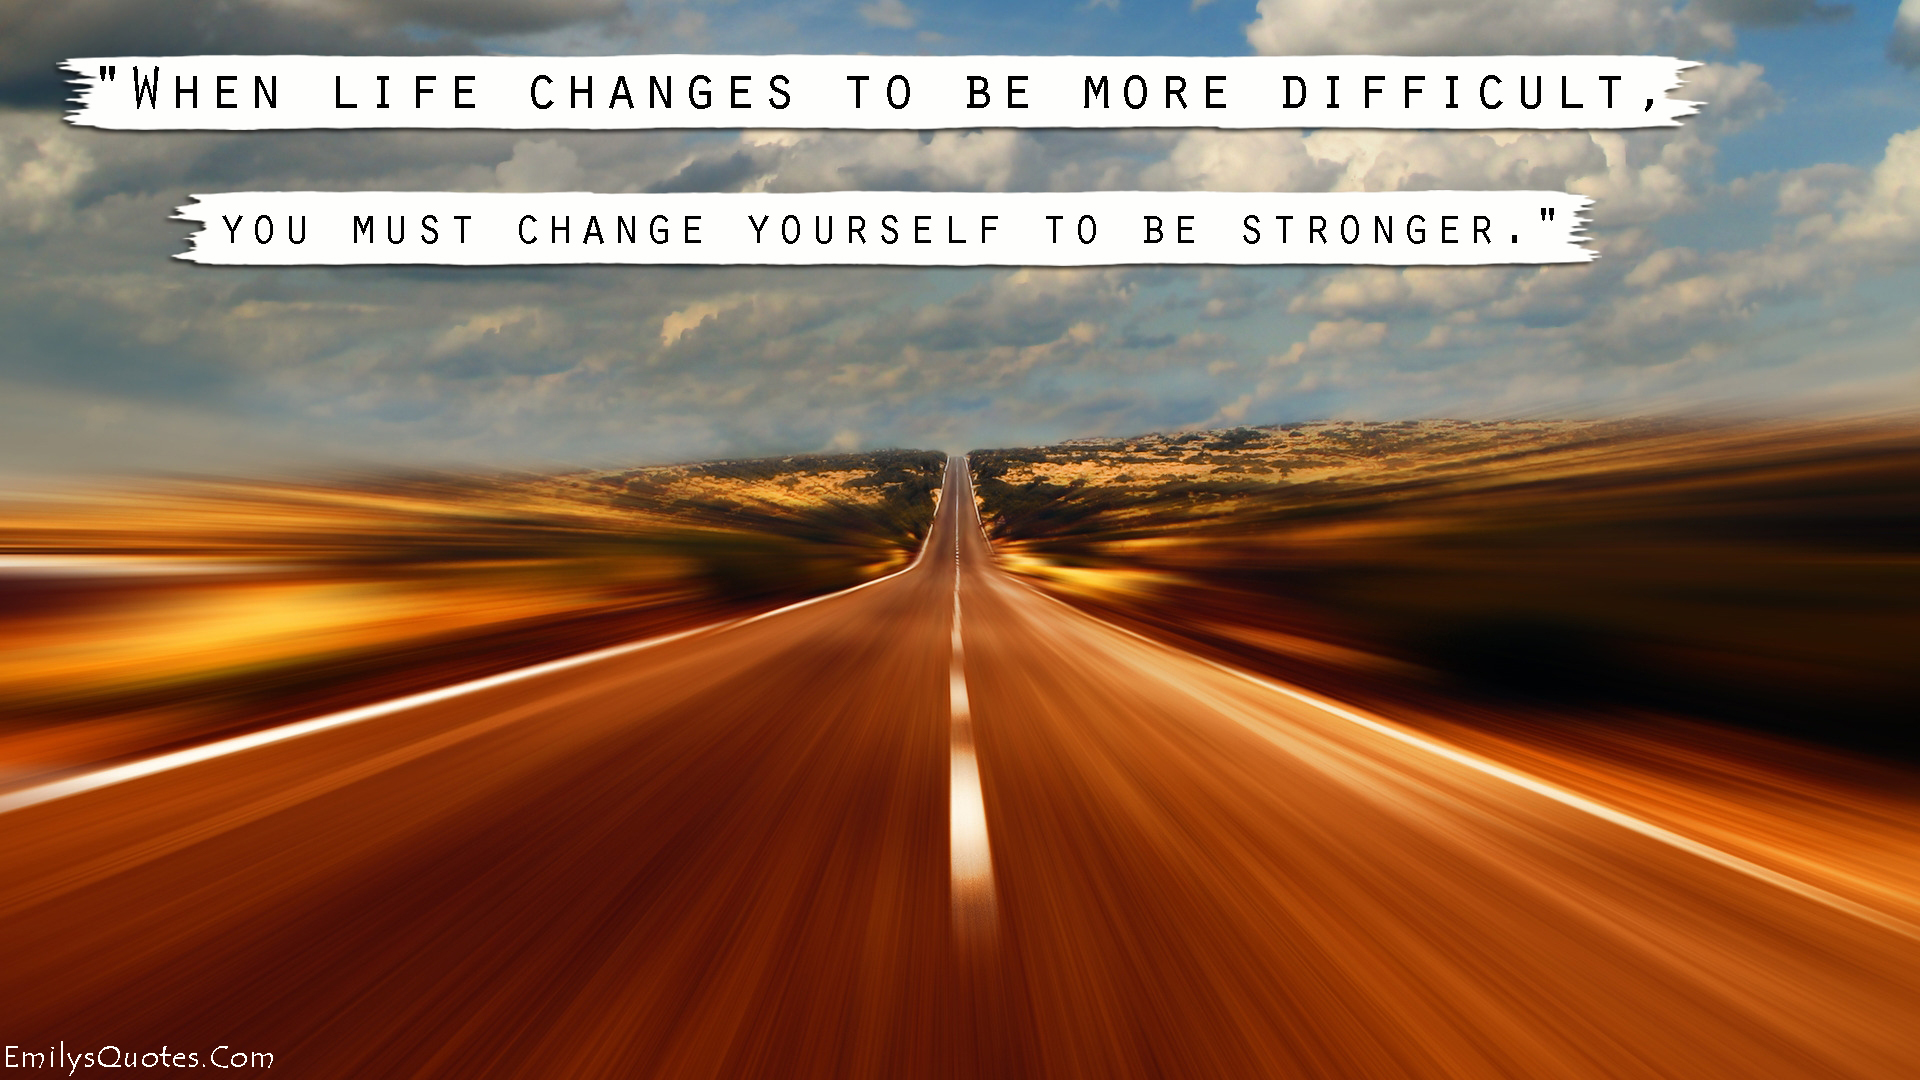 When Life Changes To Be More Difficult You Must Change Yourself To Be Stronger Popular Inspirational Quotes At Emilysquotes